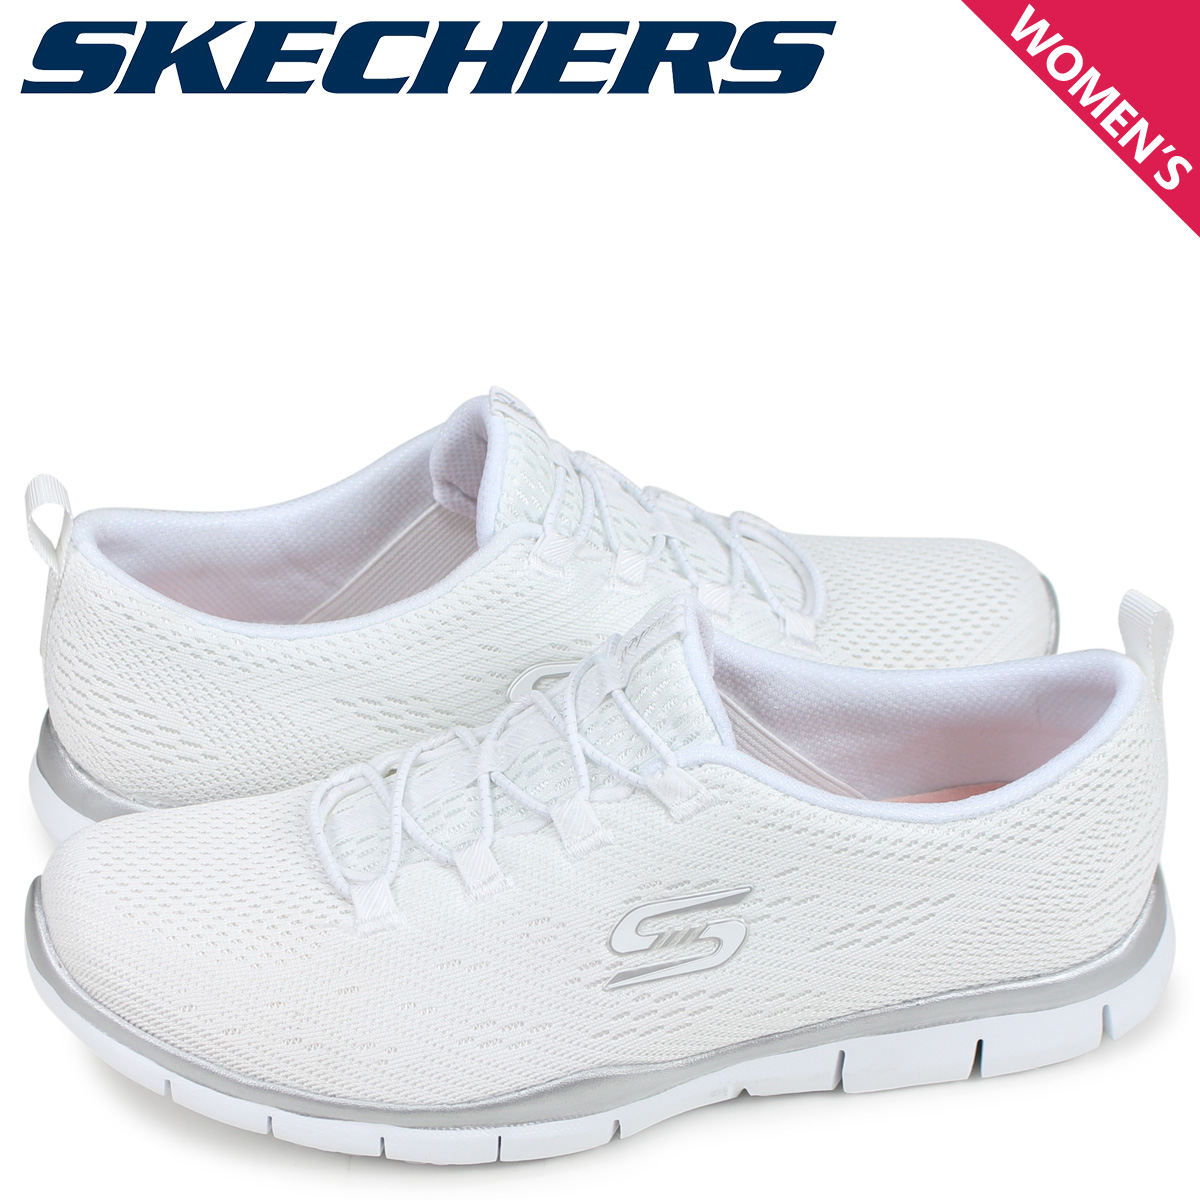 skechers my